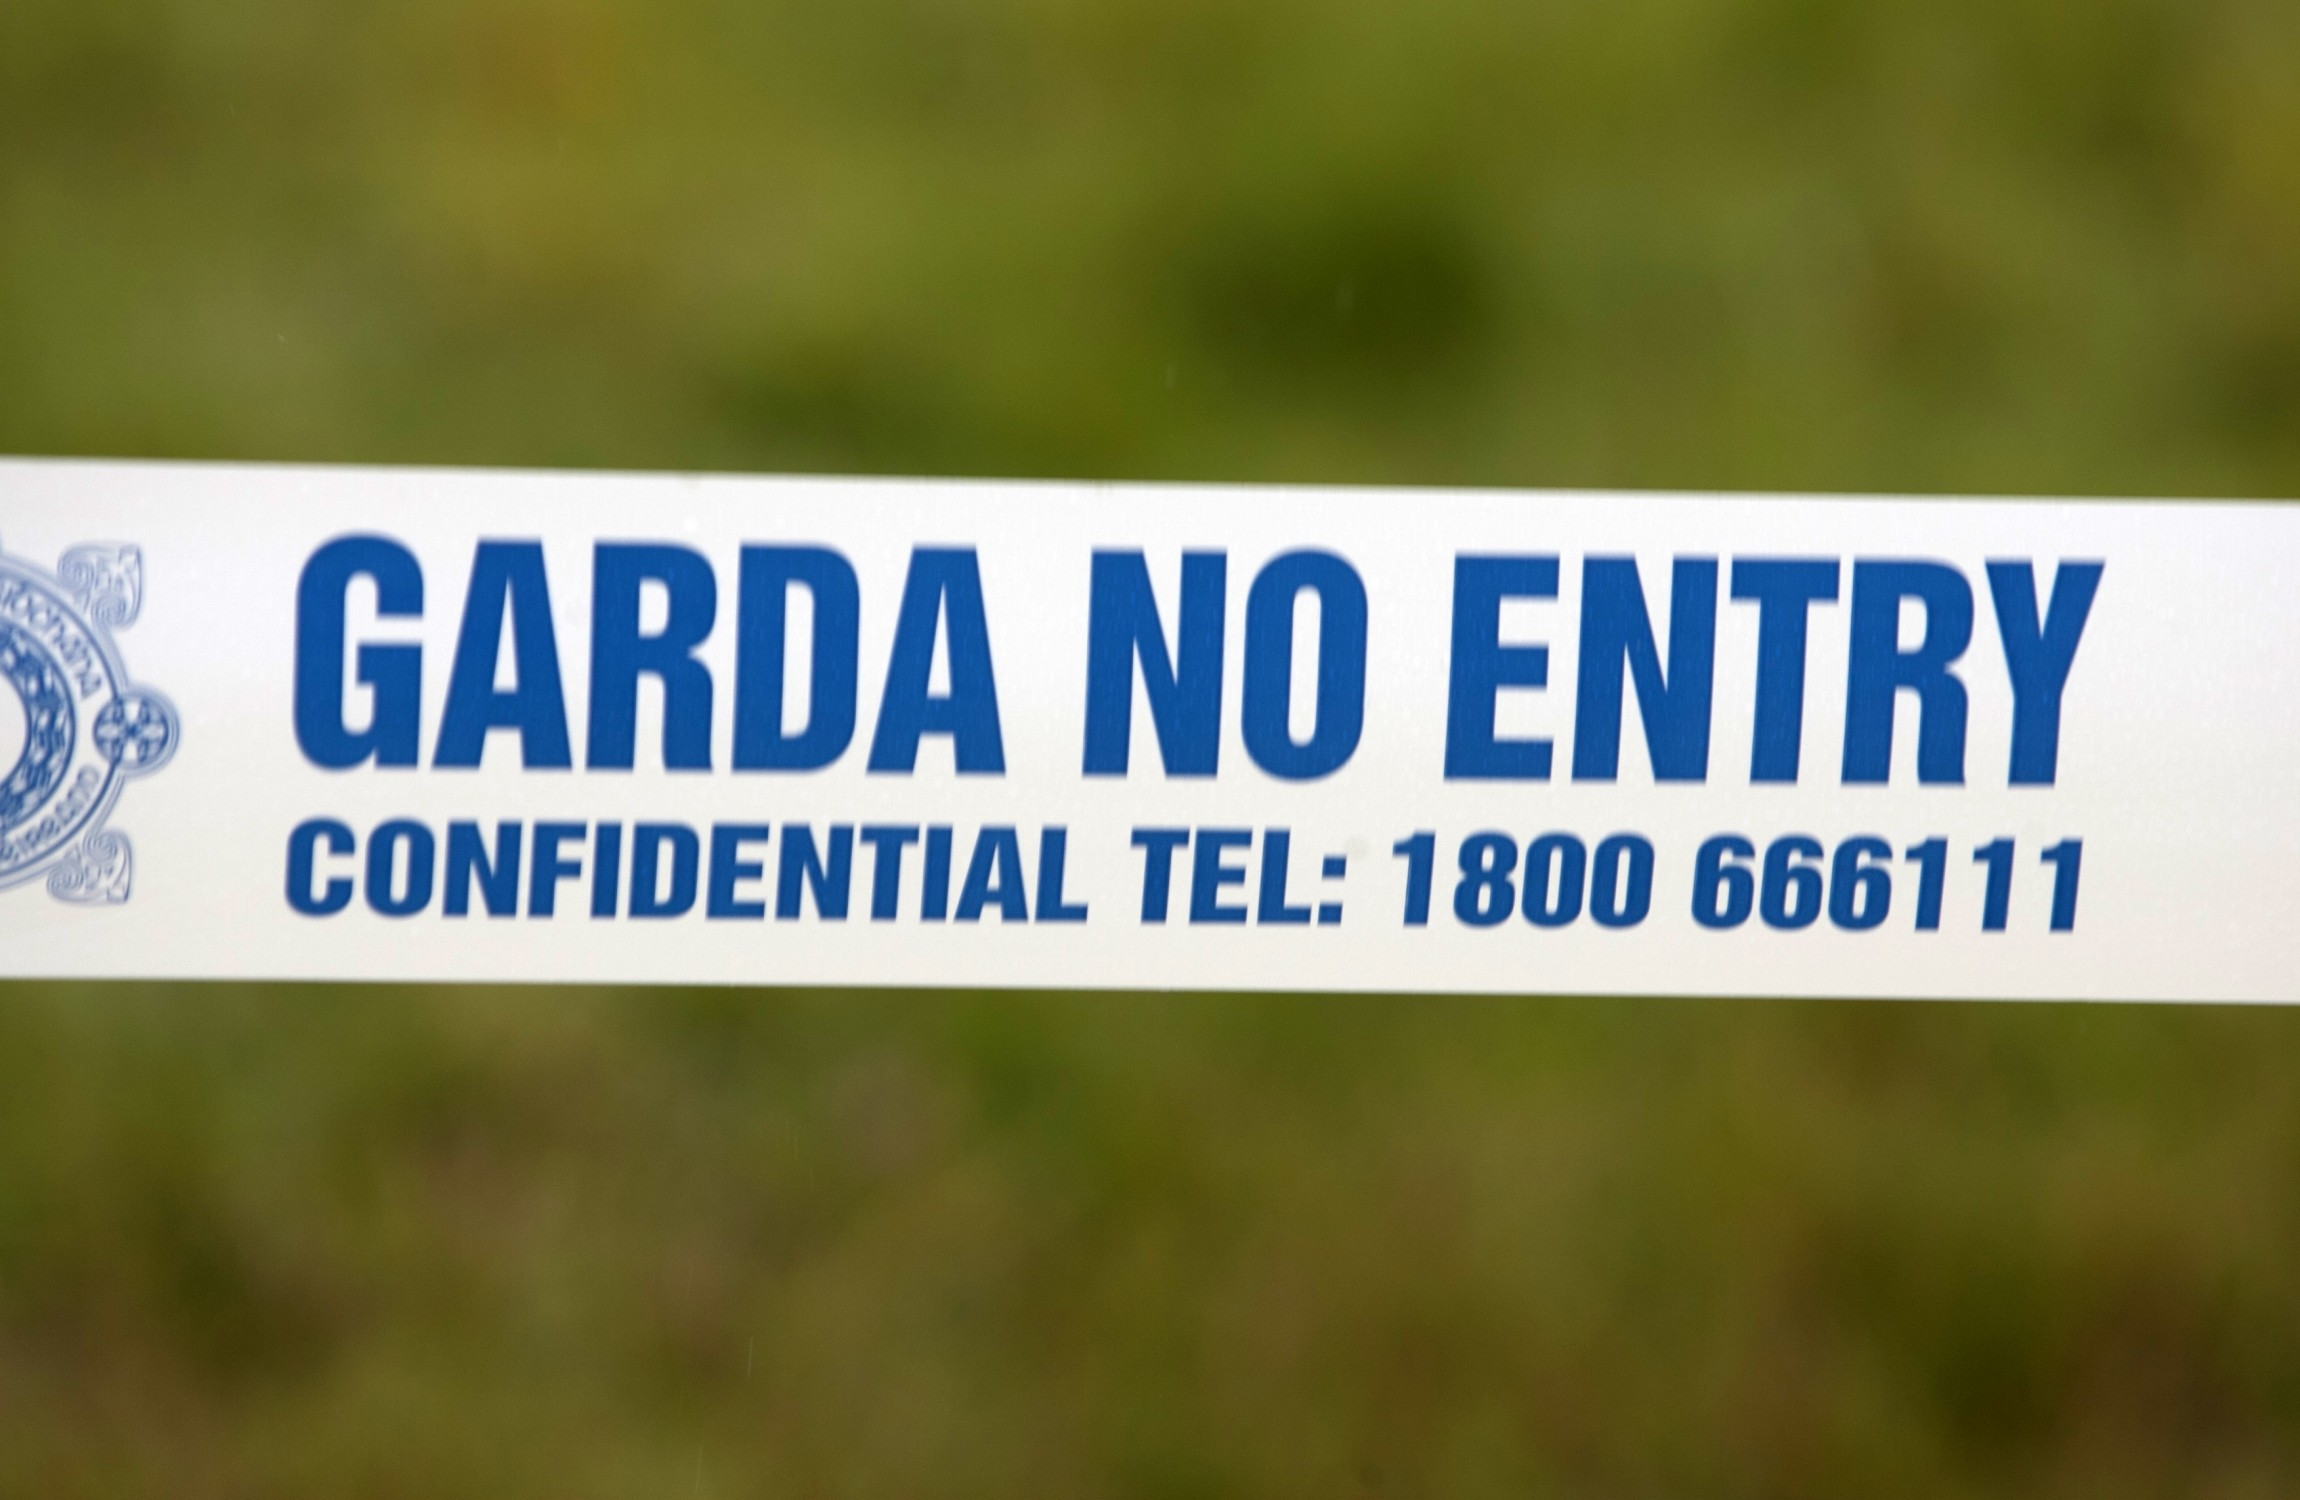 Bodies of two men recovered from sea off Donegal